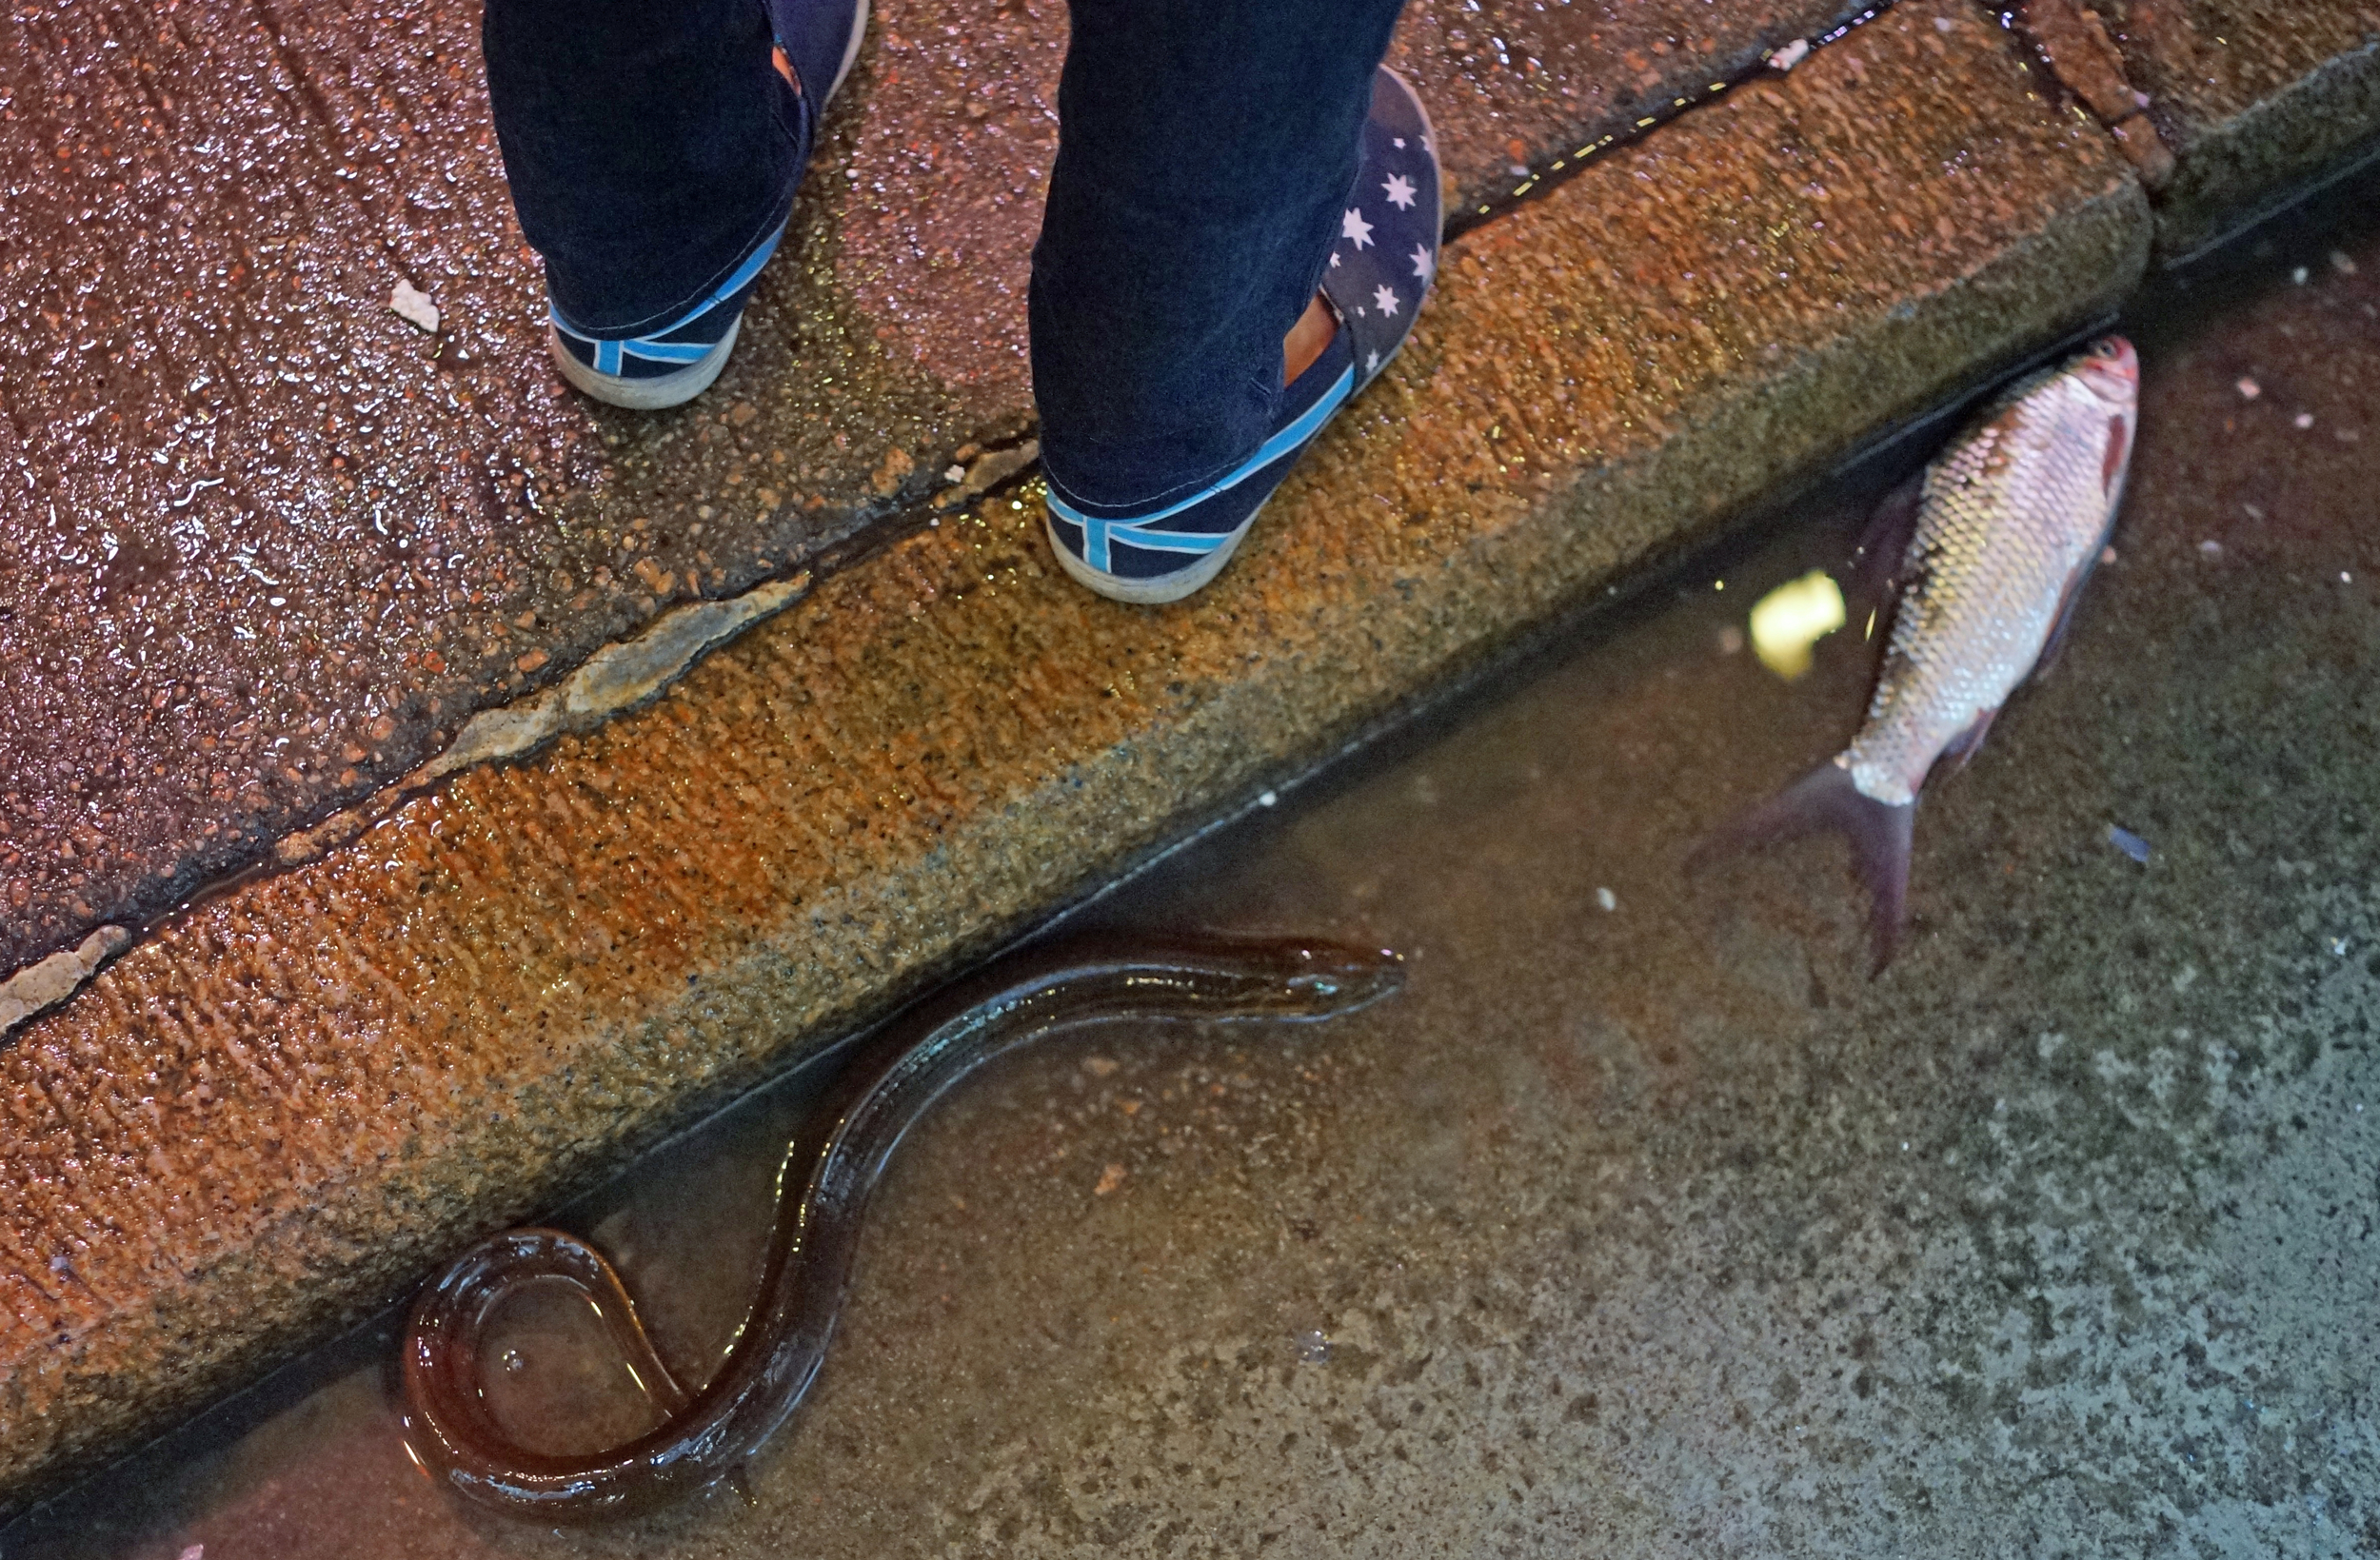 An eel and a fish made a forlorn bid for freedom at Wanchai wet market